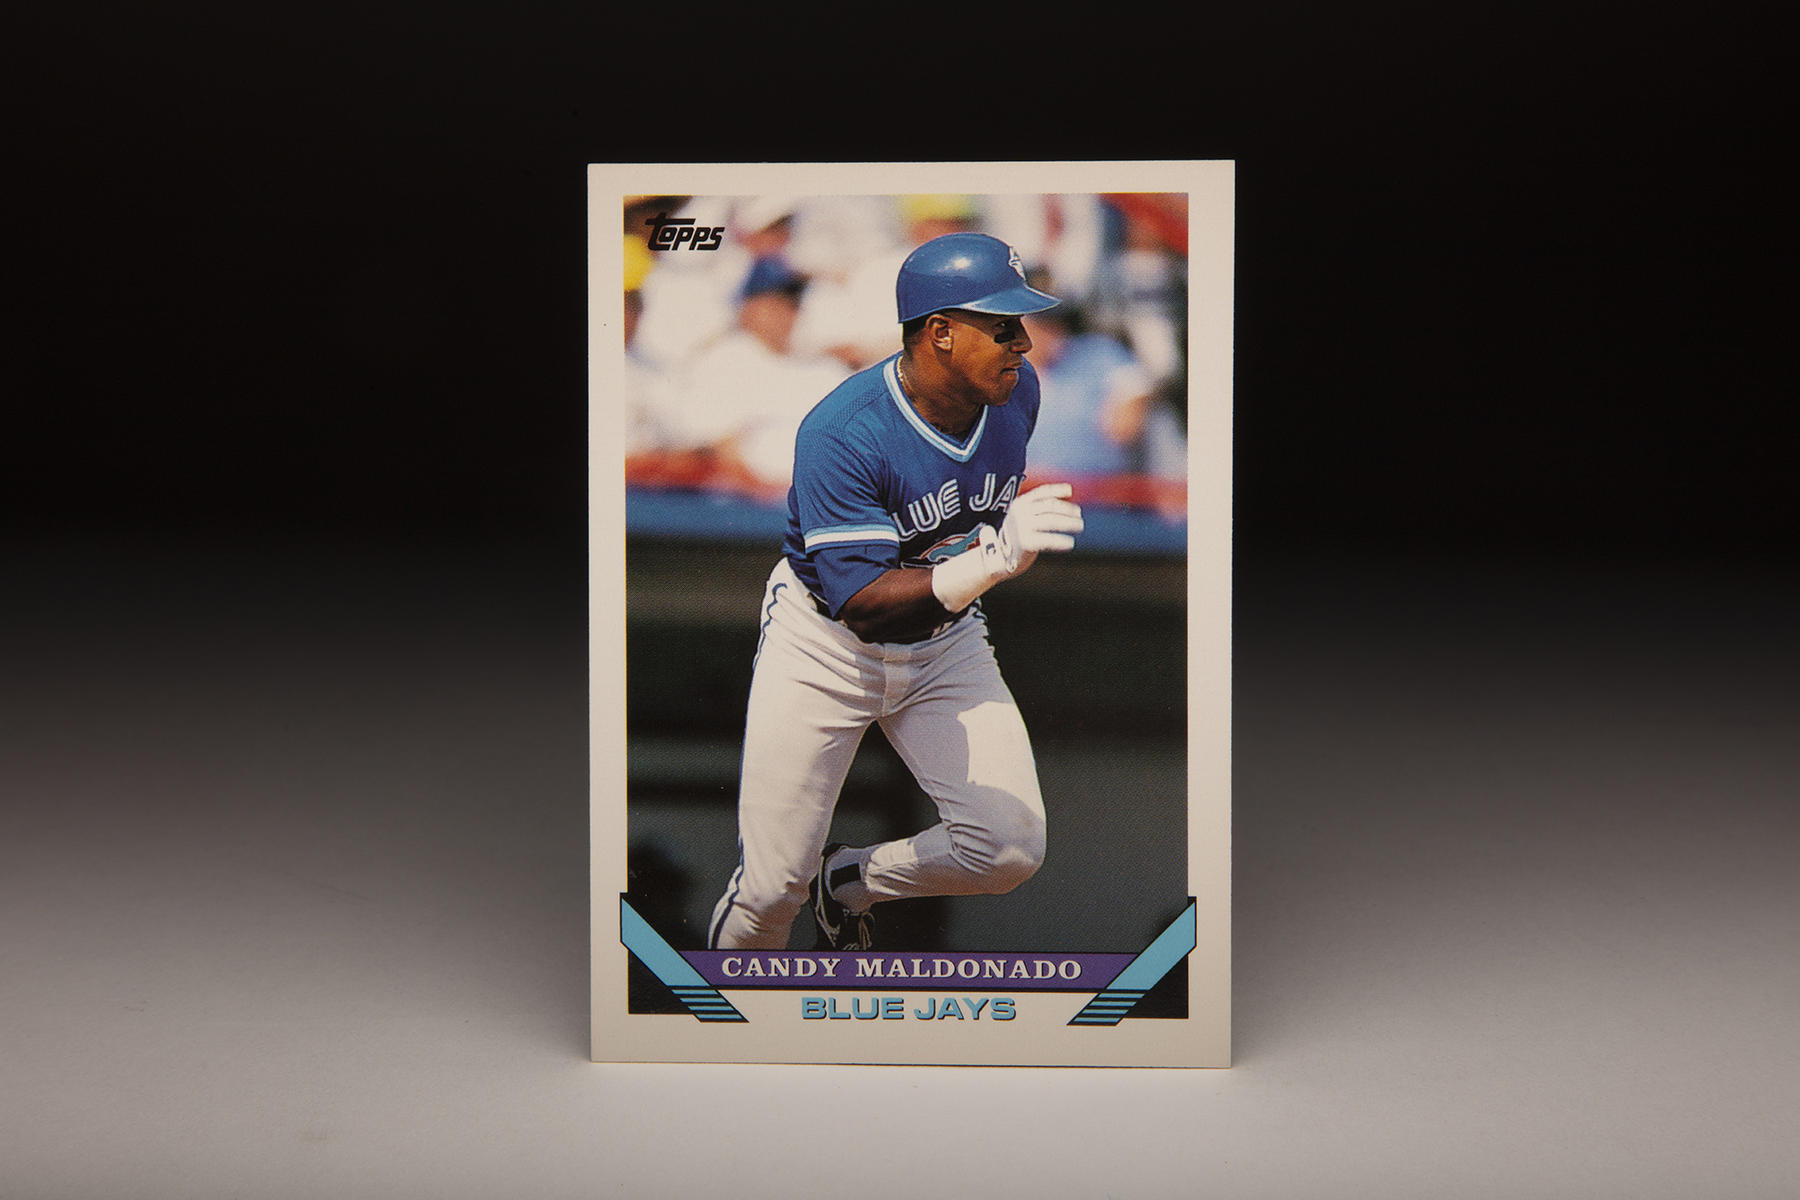 Candy Maldonado's 1993 Topps card shows him in action with the Blue Jays. In 1993, Maldonado helped Toronto win its first World Series title. (Milo Stewart Jr./National Baseball Hall of Fame and Museum)